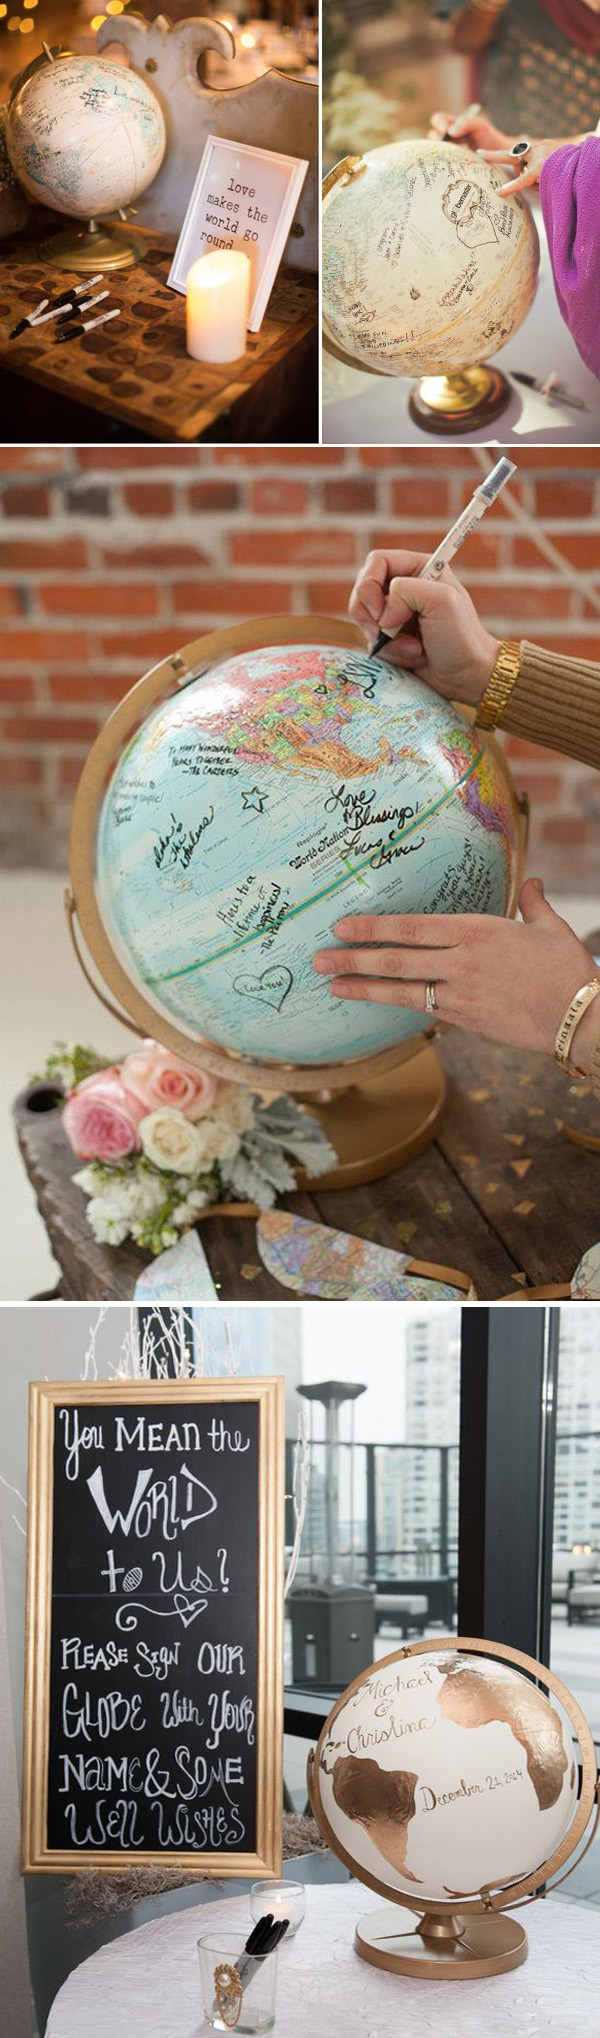 23 unique wedding guest book ideas for your big day